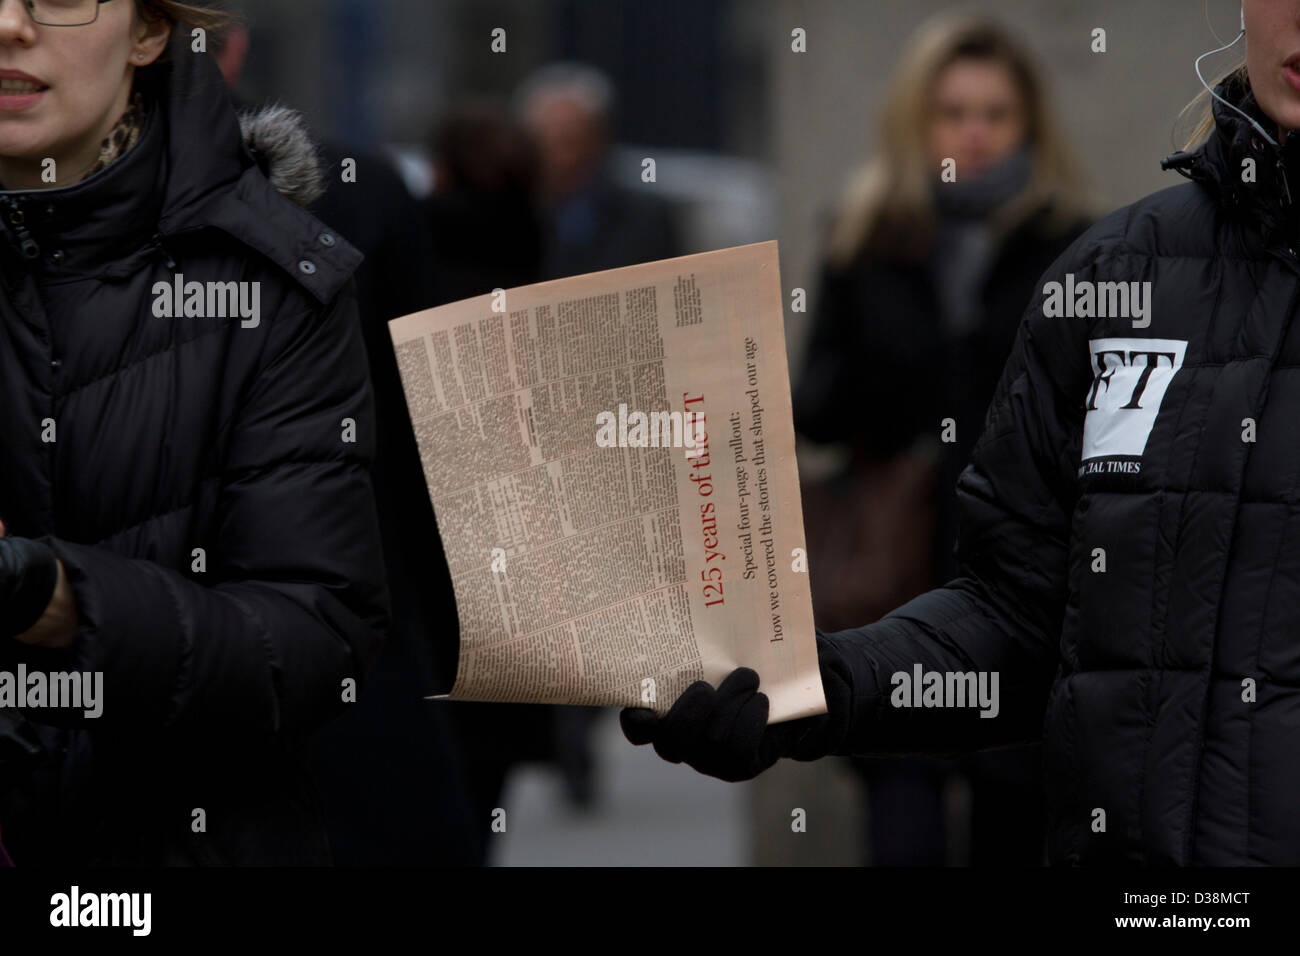 London, UK. 13th February 2013. A Newspaper vendor distributes free copies of the first Financial Times in the city - Stock Image